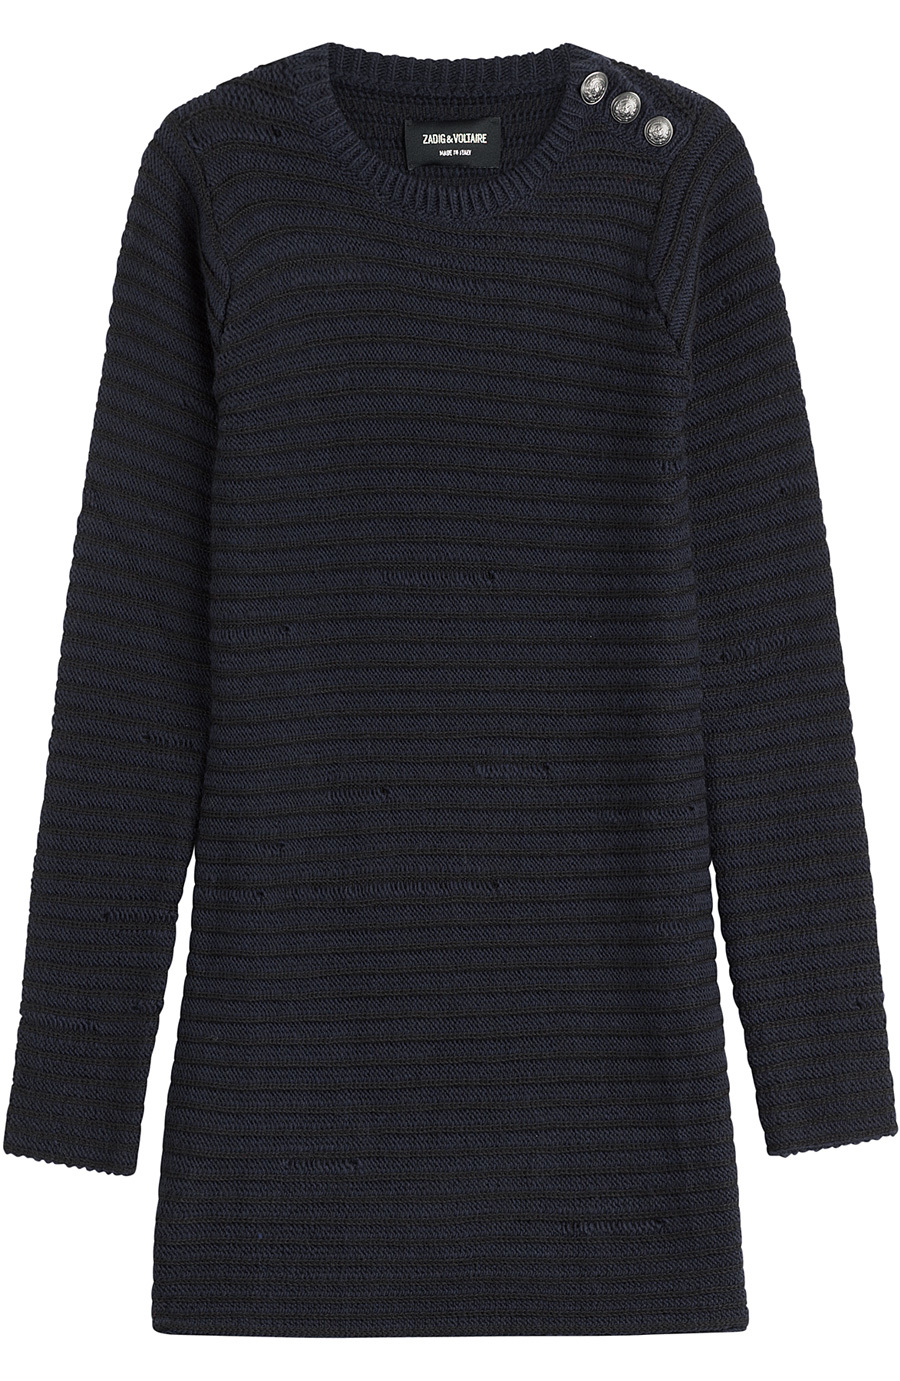 Striped Pullover With Merino Wool None - pattern: plain; style: standard; predominant colour: navy; occasions: casual; fibres: wool - 100%; fit: standard fit; neckline: crew; length: mid thigh; sleeve length: long sleeve; sleeve style: standard; texture group: knits/crochet; pattern type: knitted - fine stitch; season: a/w 2015; wardrobe: basic